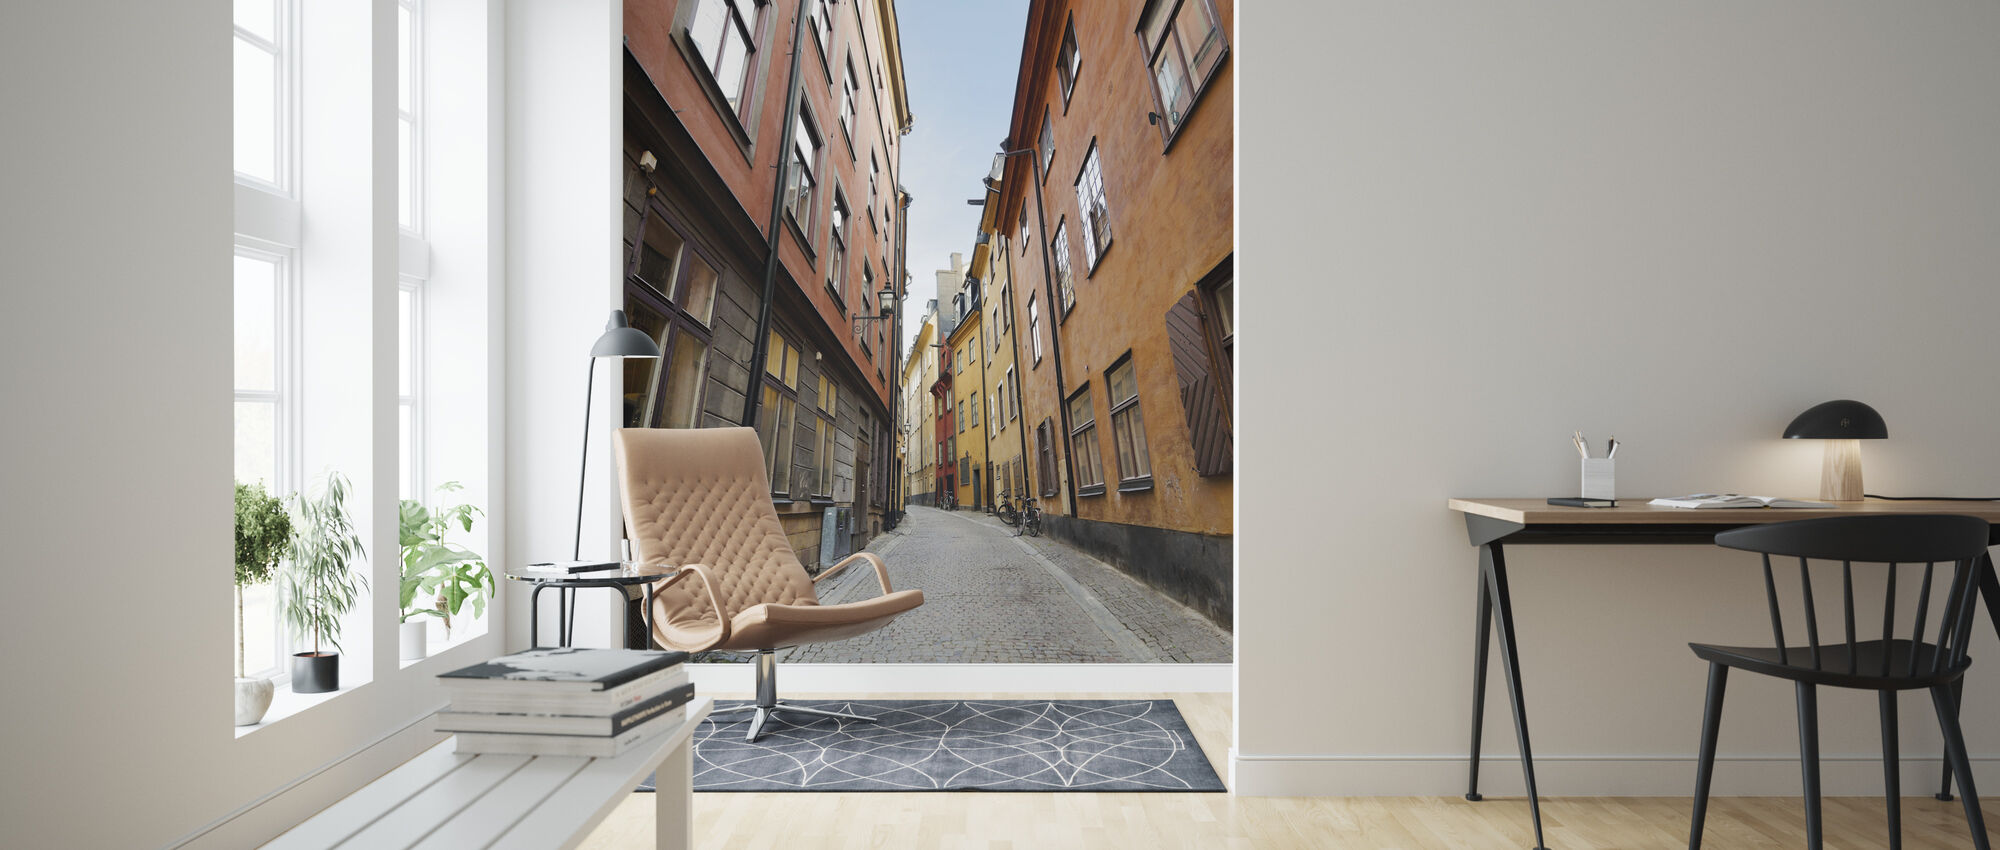 Old Town Street in Stockholm - Wallpaper - Living Room